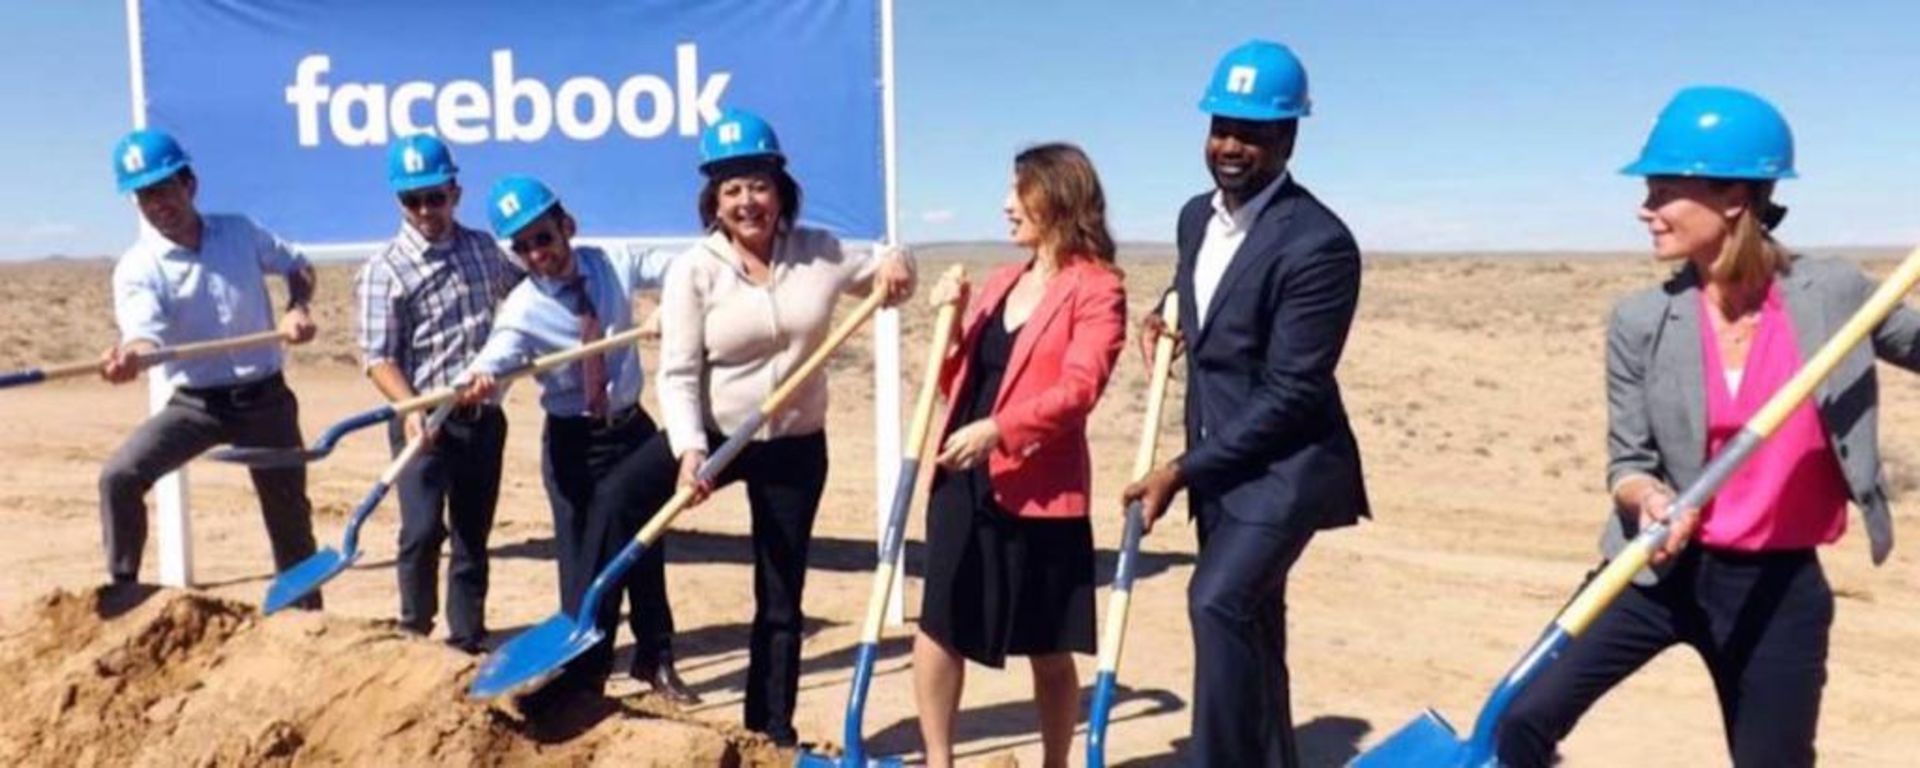 20-Lot Package - Tremendous Investment Upside near Facebook's New Data Center - FINANCING GUARANTEED - Image 3 of 5